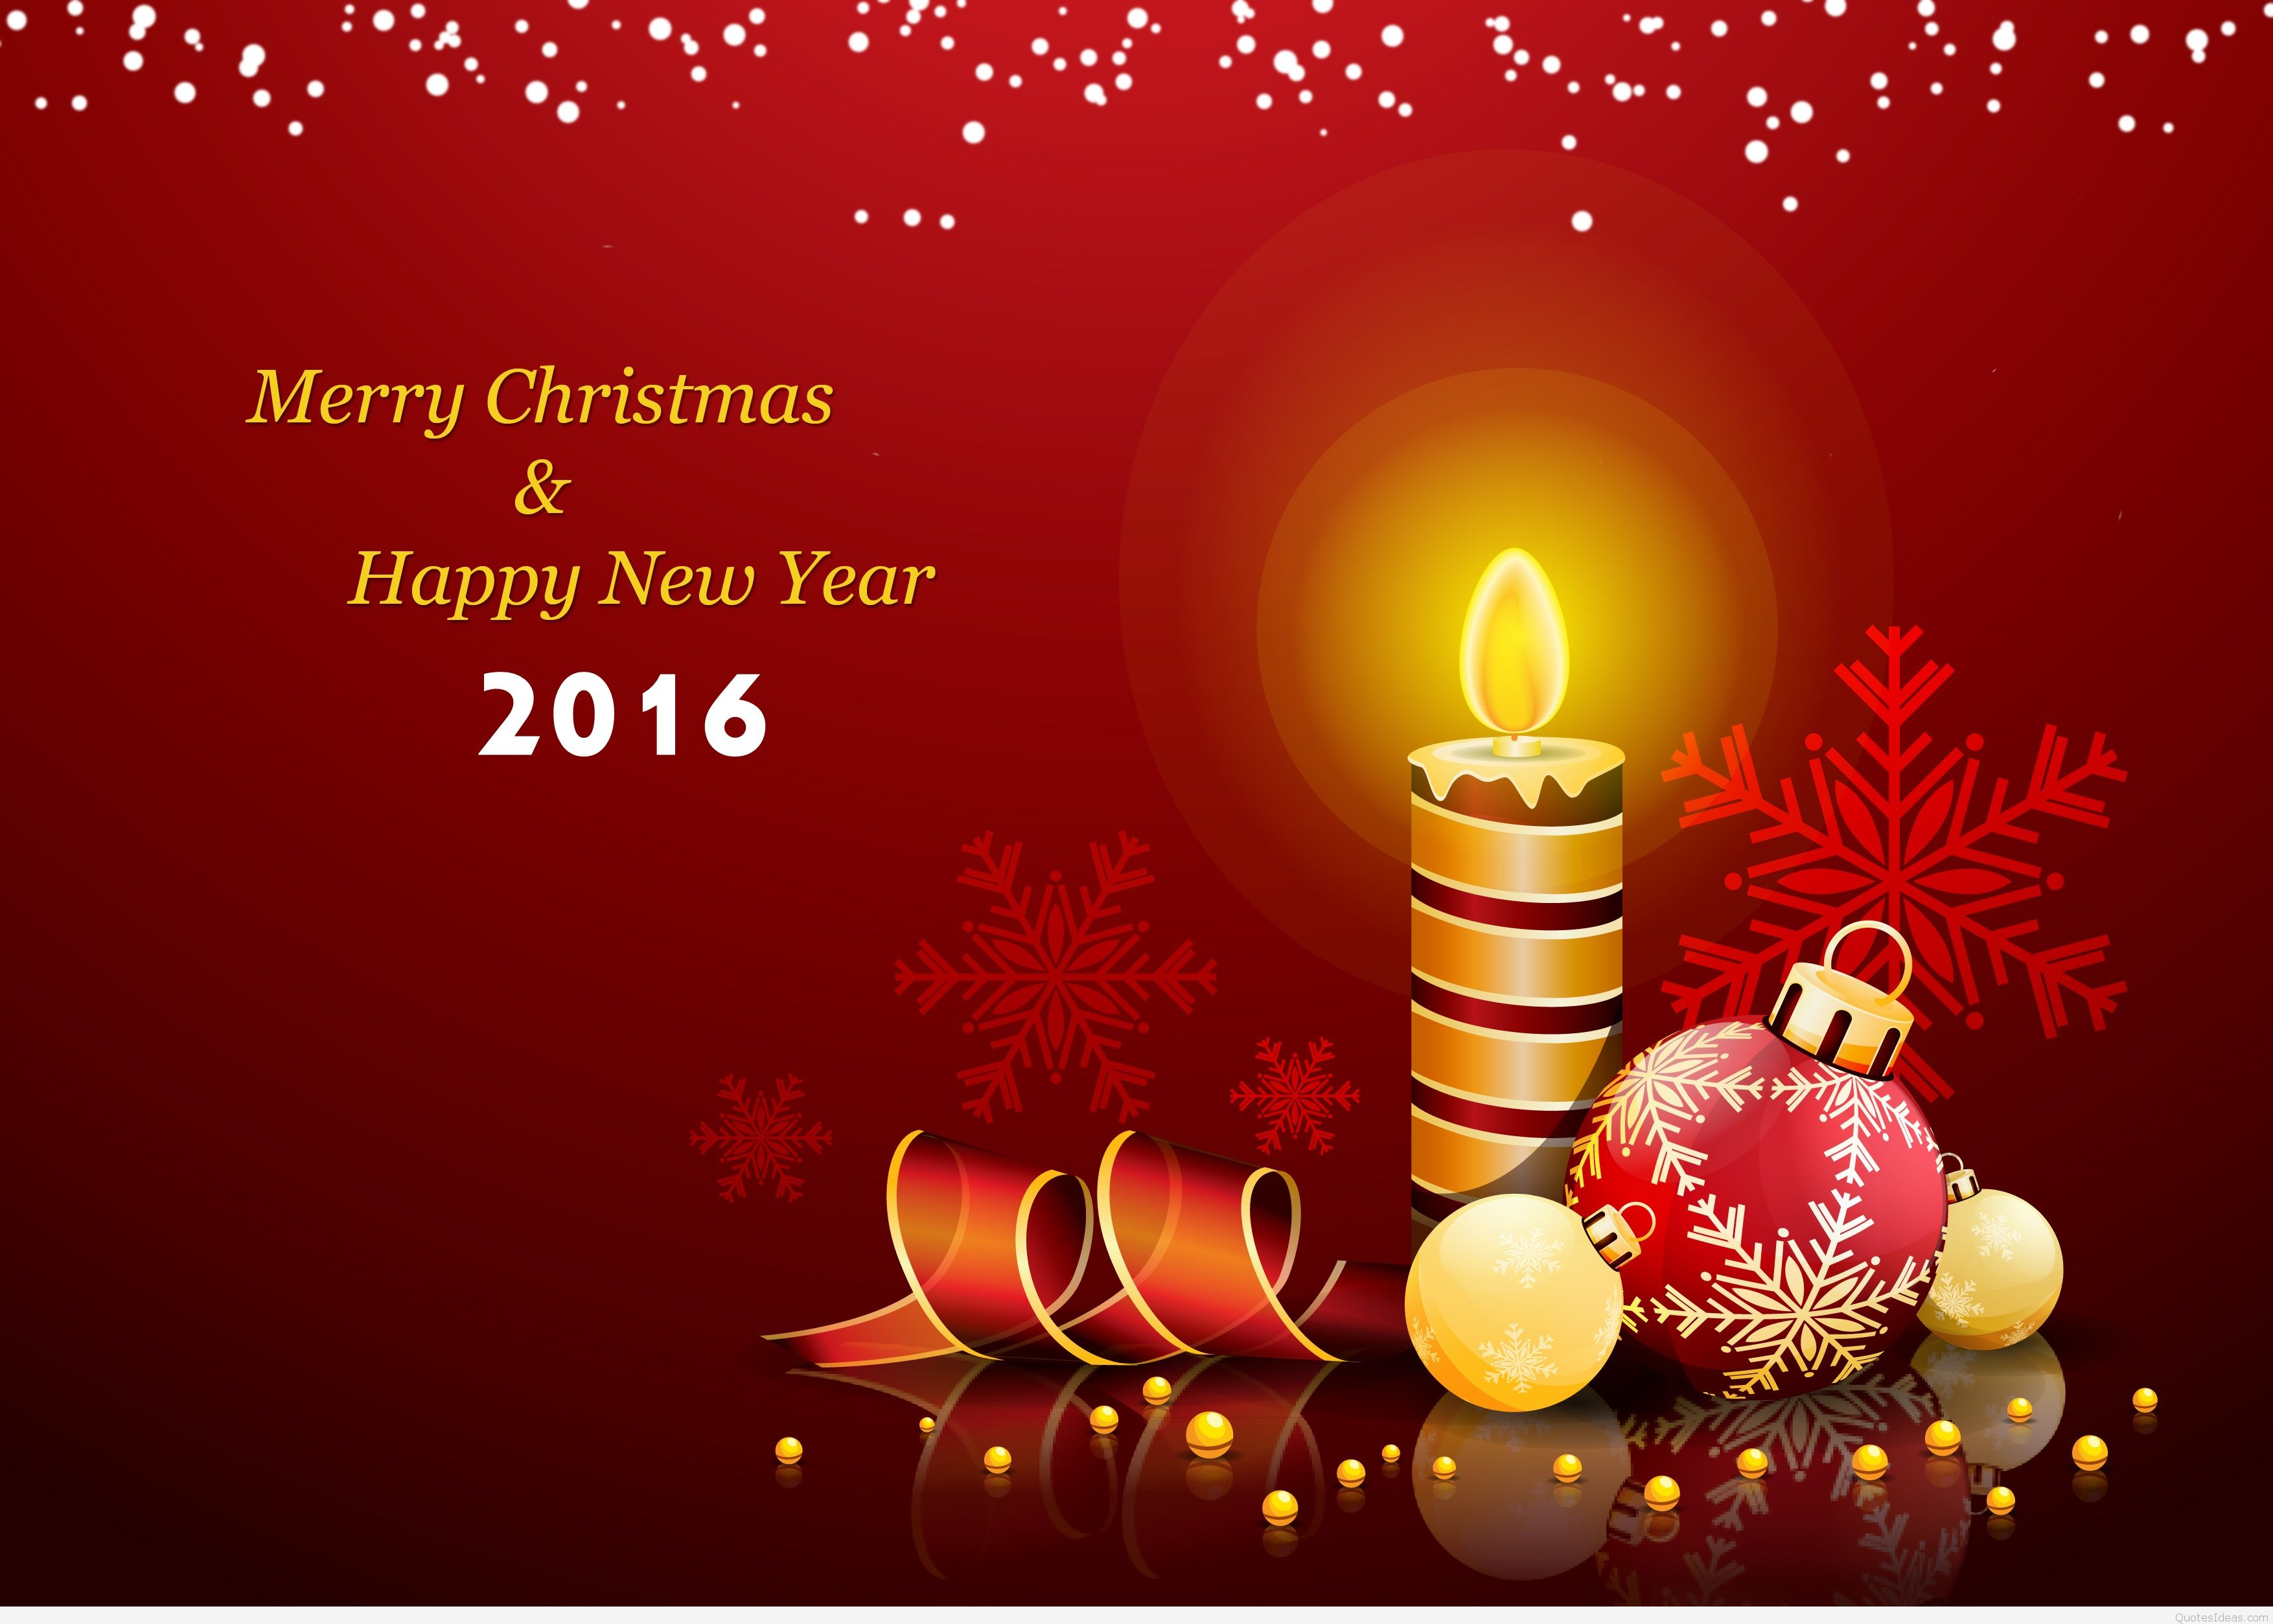 Happy New Year 2016 Download Wallpapers Pictures With SMS 3508x2507